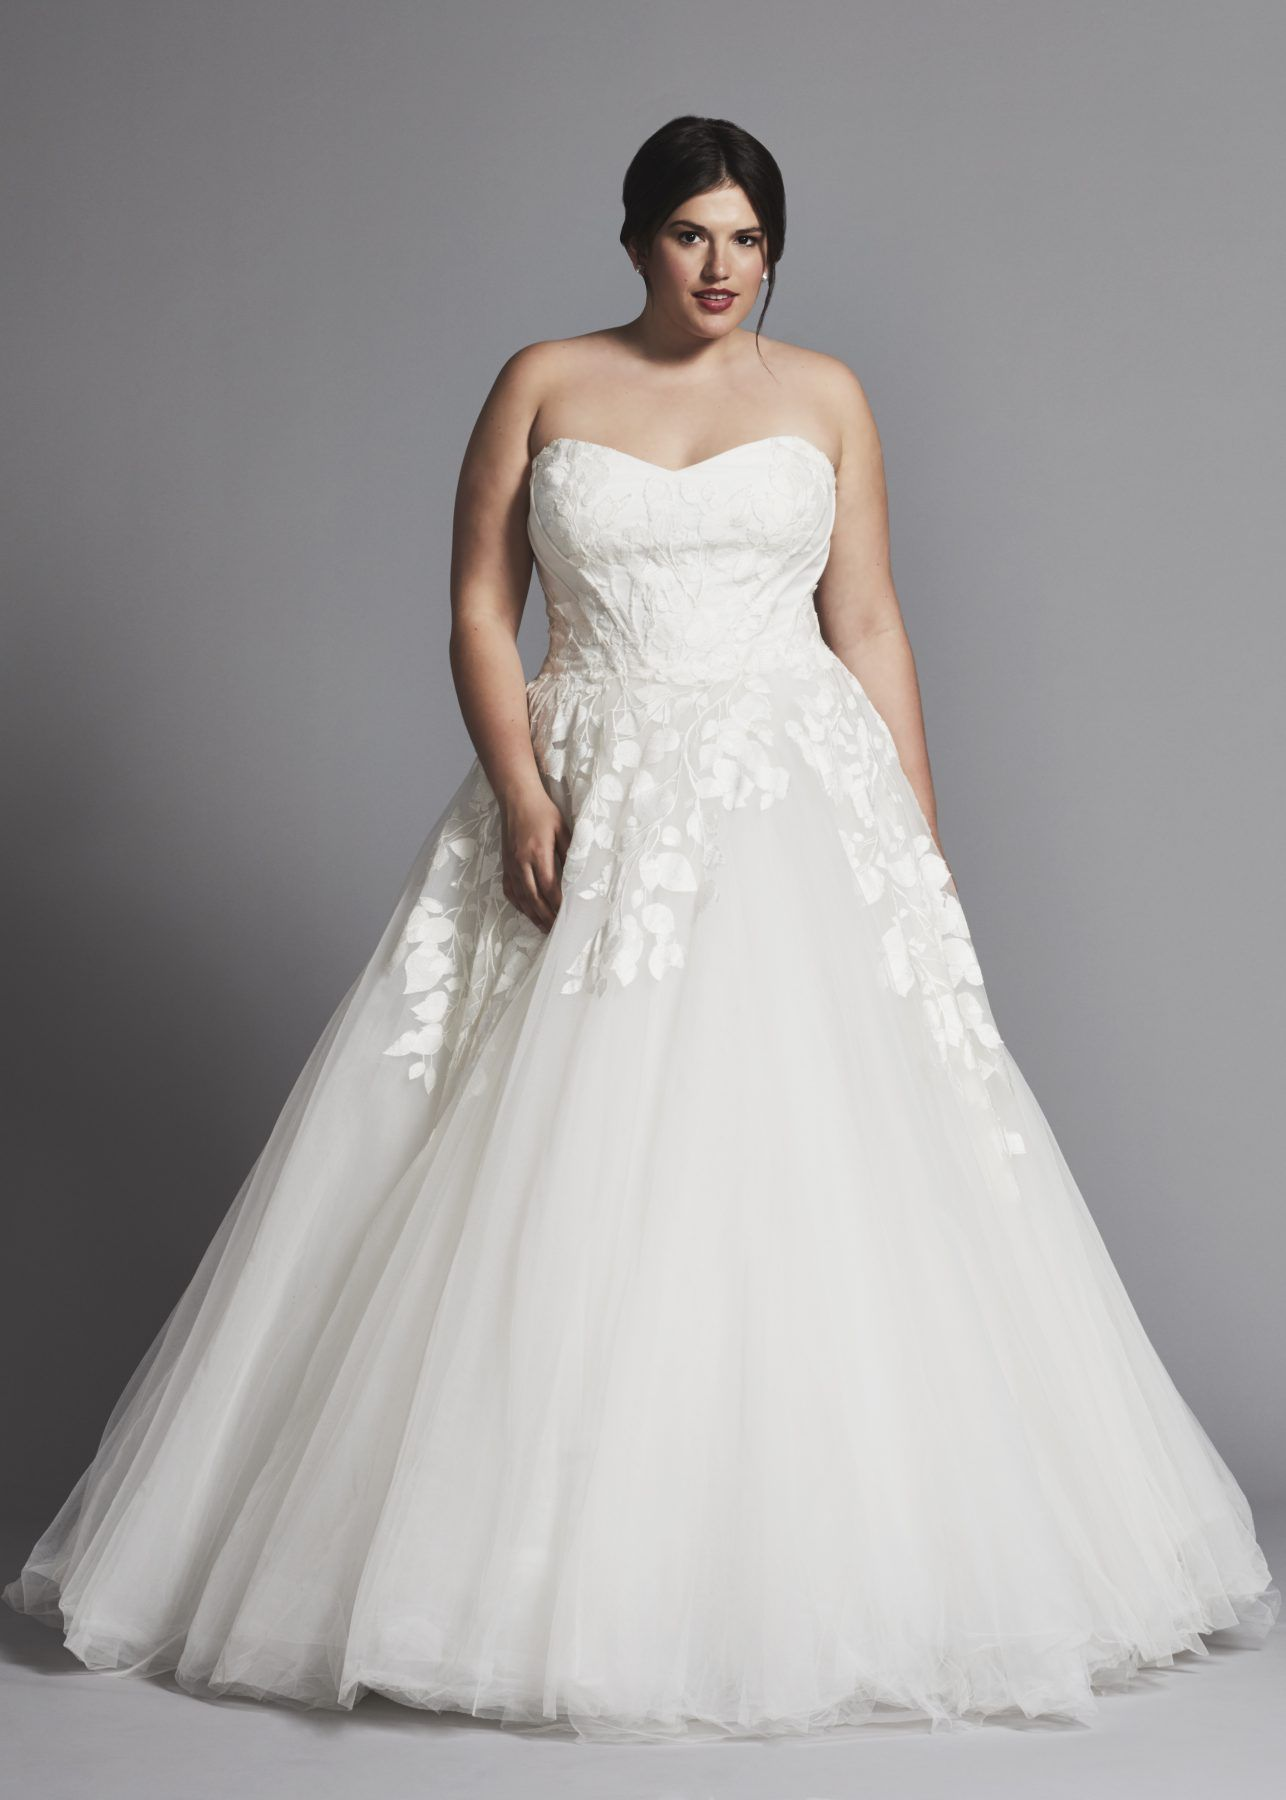 Strapless Applique Ball Gown Wedding Dress With Tulle